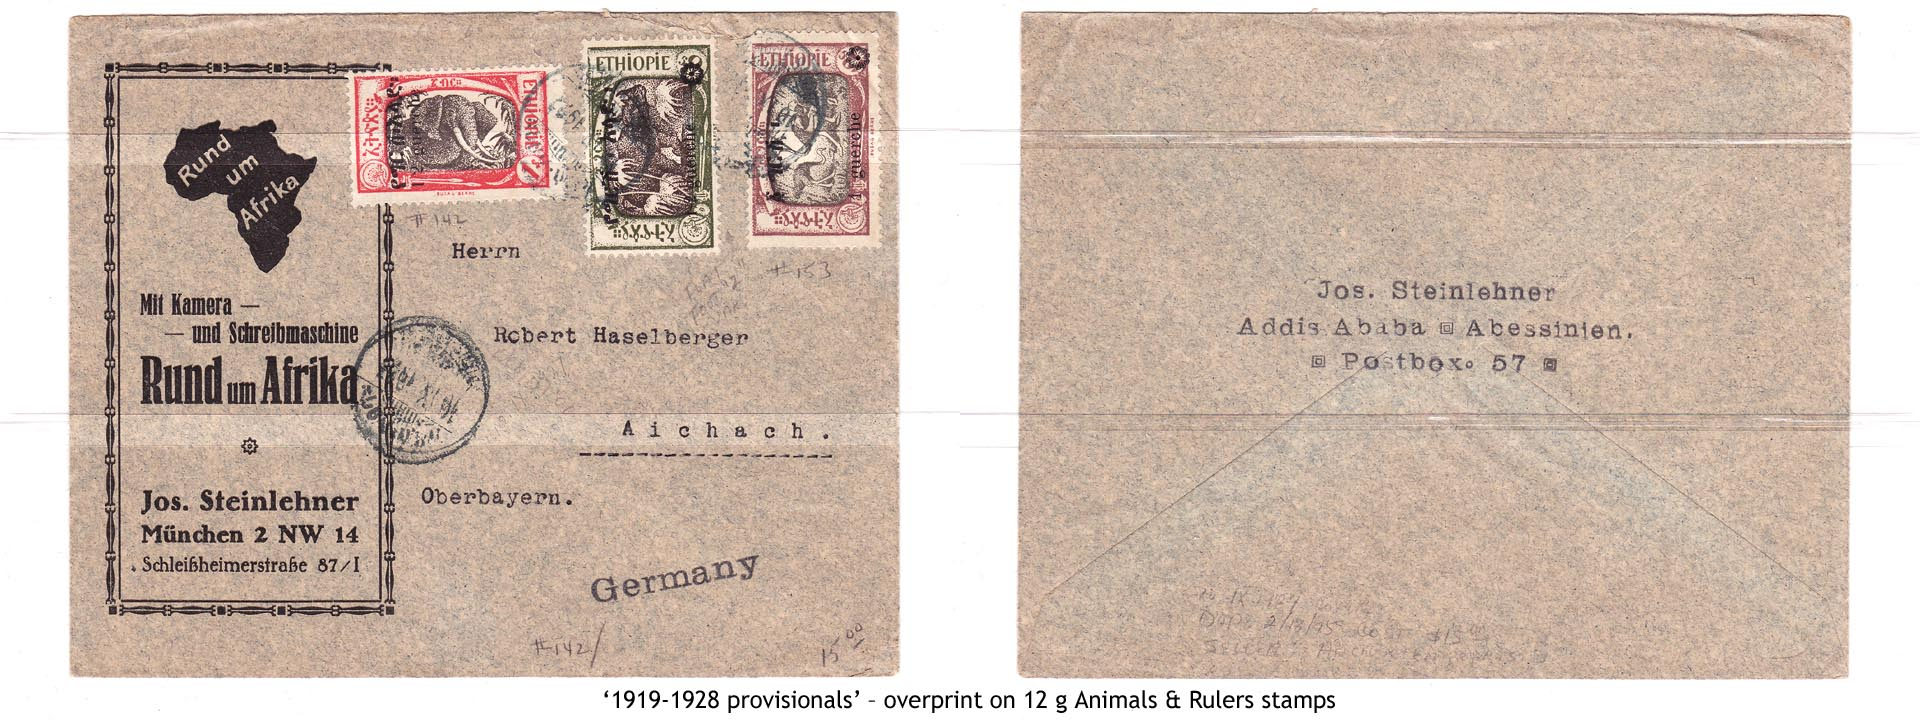 1919-1928 provisionals' – overprint on 12 g Animals & Rulers stamps